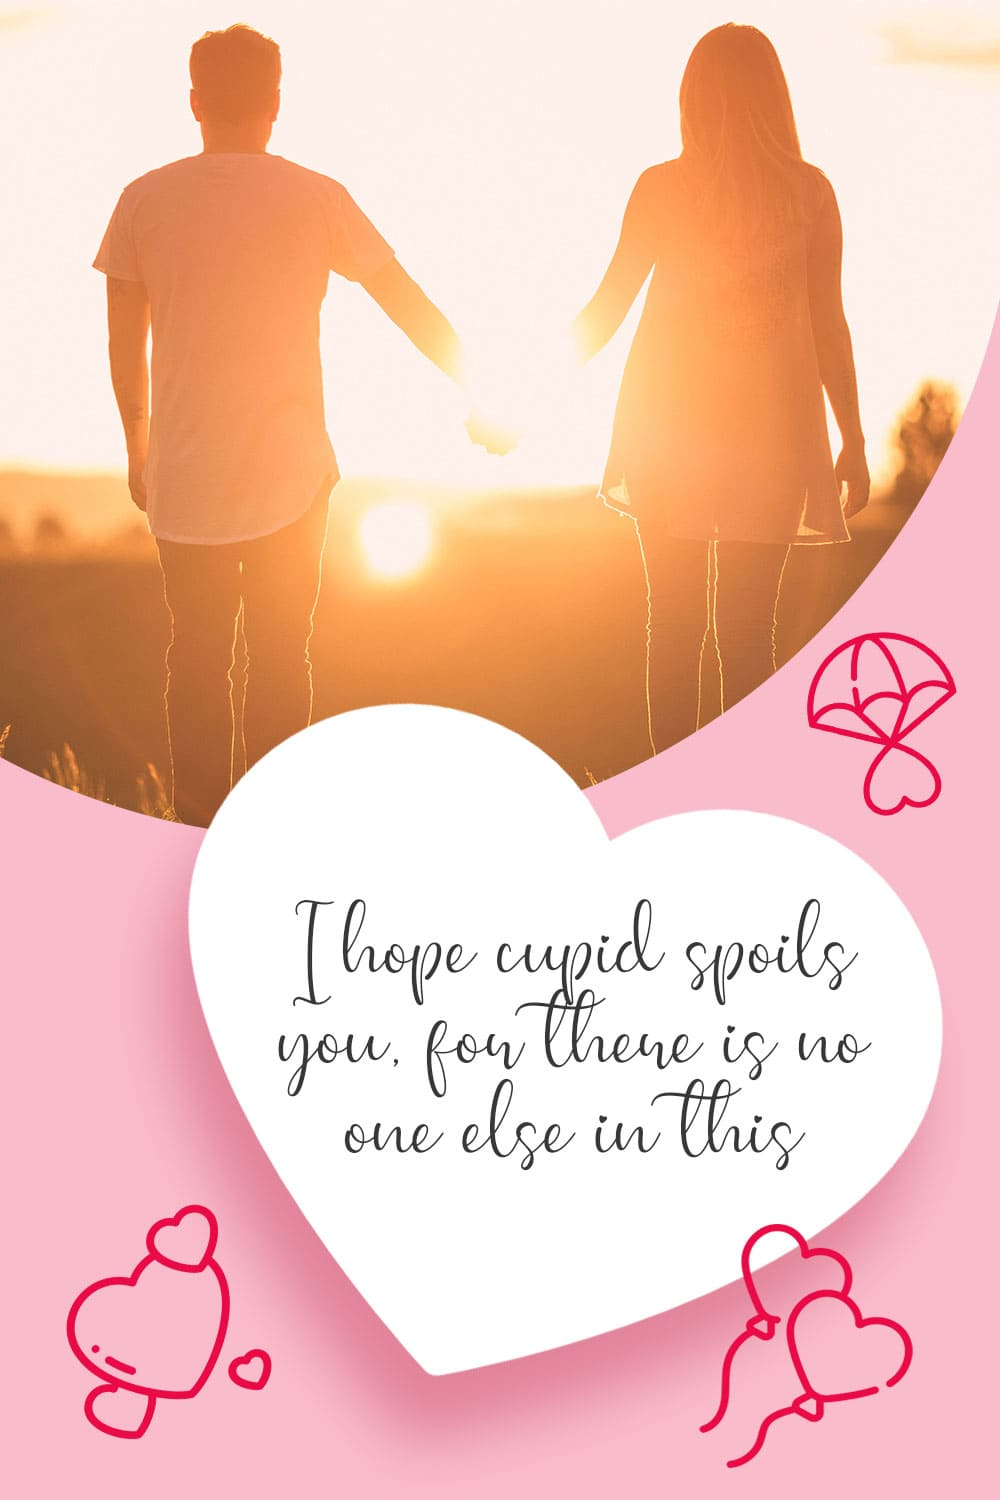 I hope cupid spoils you, for there is no one else in this world who would deserve it more.